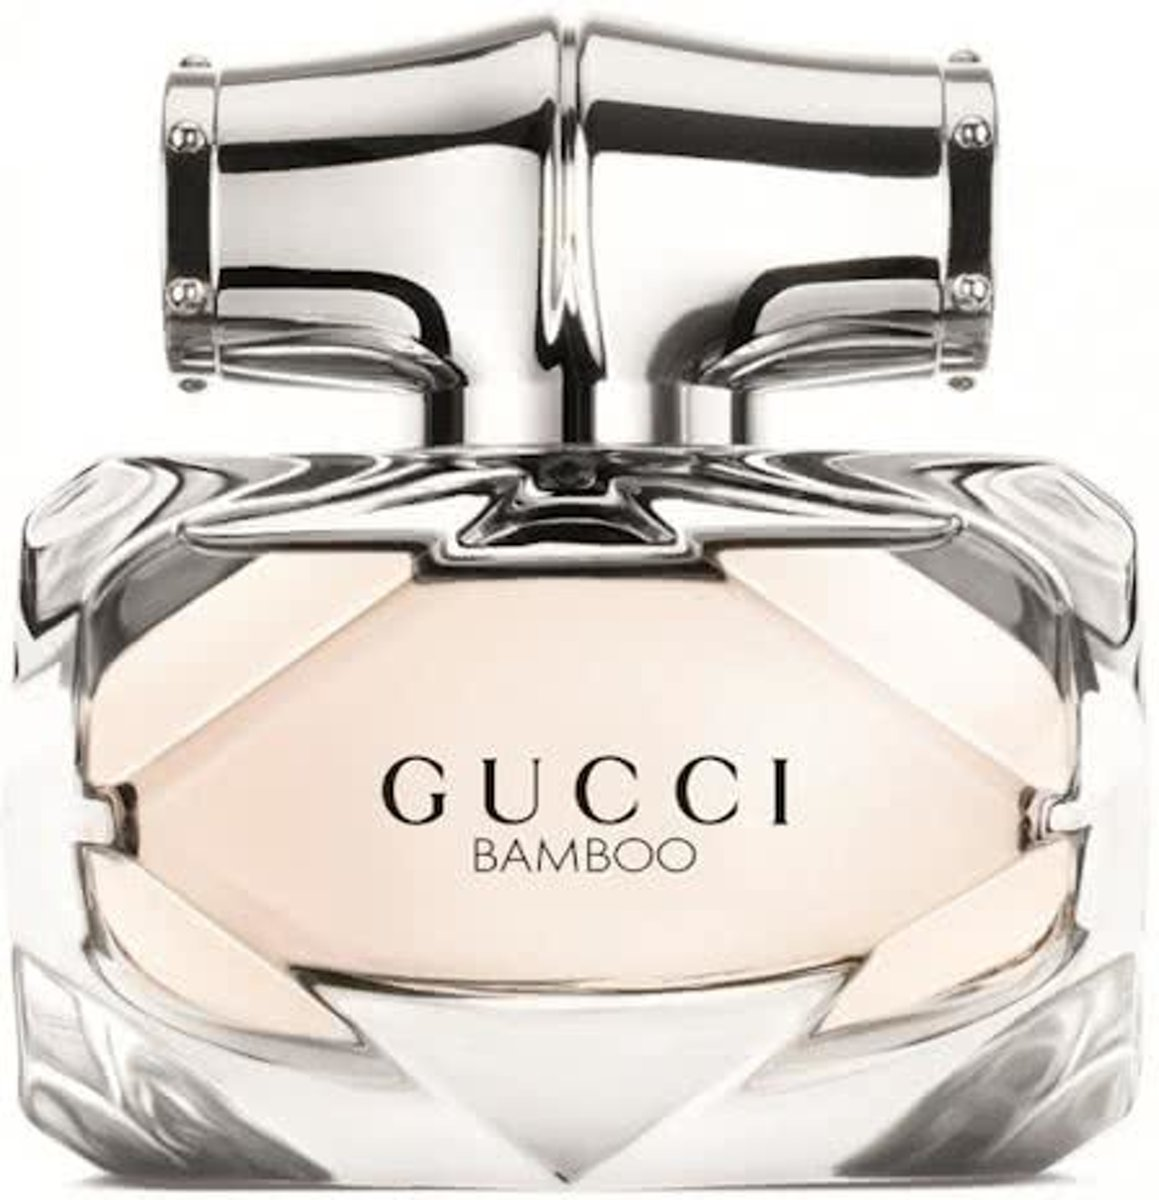 GucciGucci Bamboo edt 50 ml